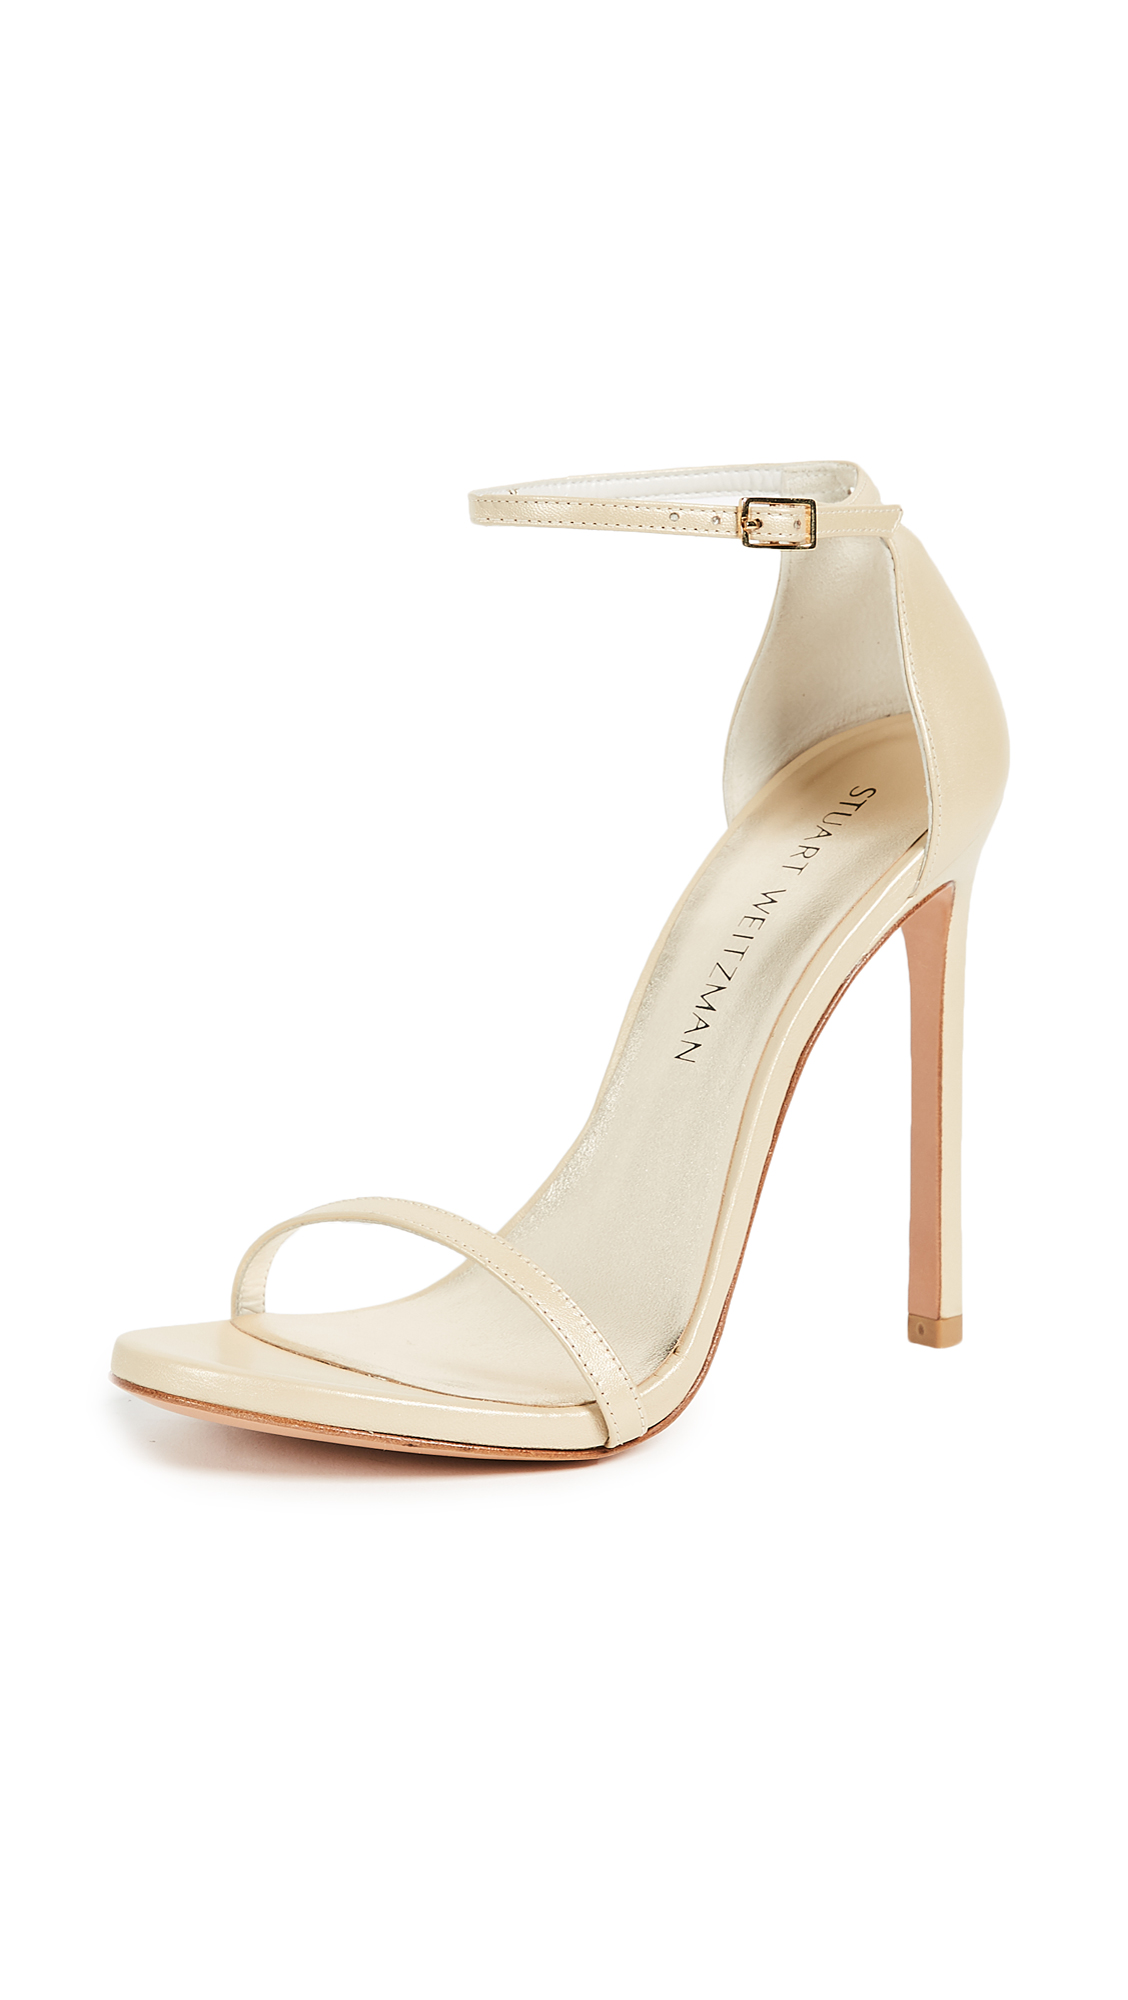 Stuart Weitzman Nudist Sandals - Pale Gold